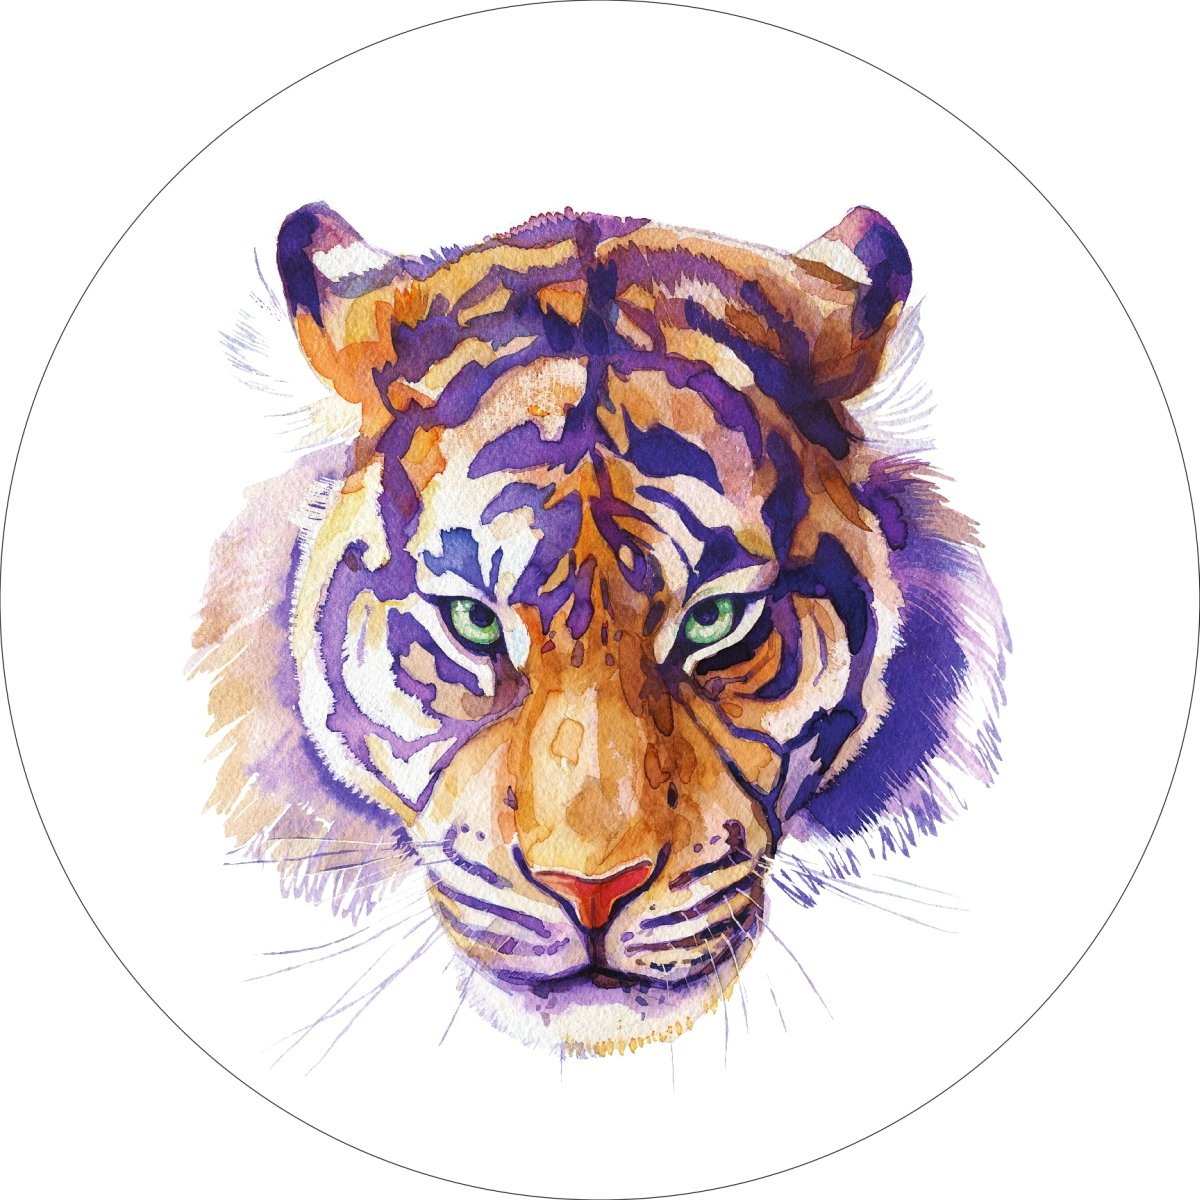 Tiger Home Wall Shelf Decor Animal Decorations Watercolor Round Sign - 18 Inch, Metal